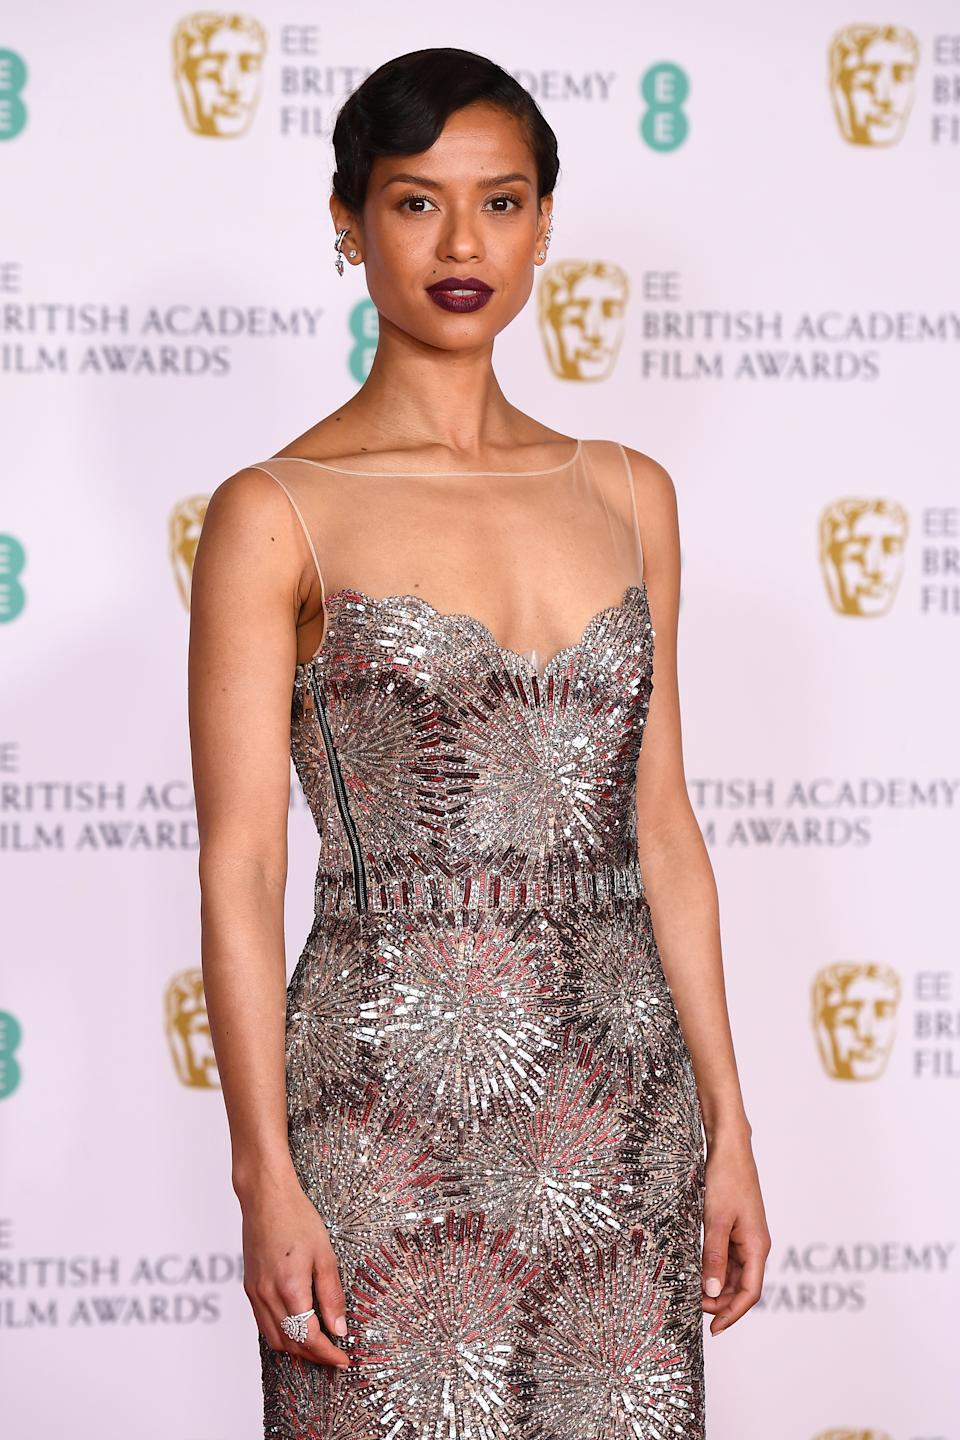 LONDON, ENGLAND - APRIL 11: Awards Presenter Gugu Mbatha-Raw attends the EE British Academy Film Awards 2021 at the Royal Albert Hall on April 11, 2021 in London, England. (Photo by Jeff Spicer/Getty Images)